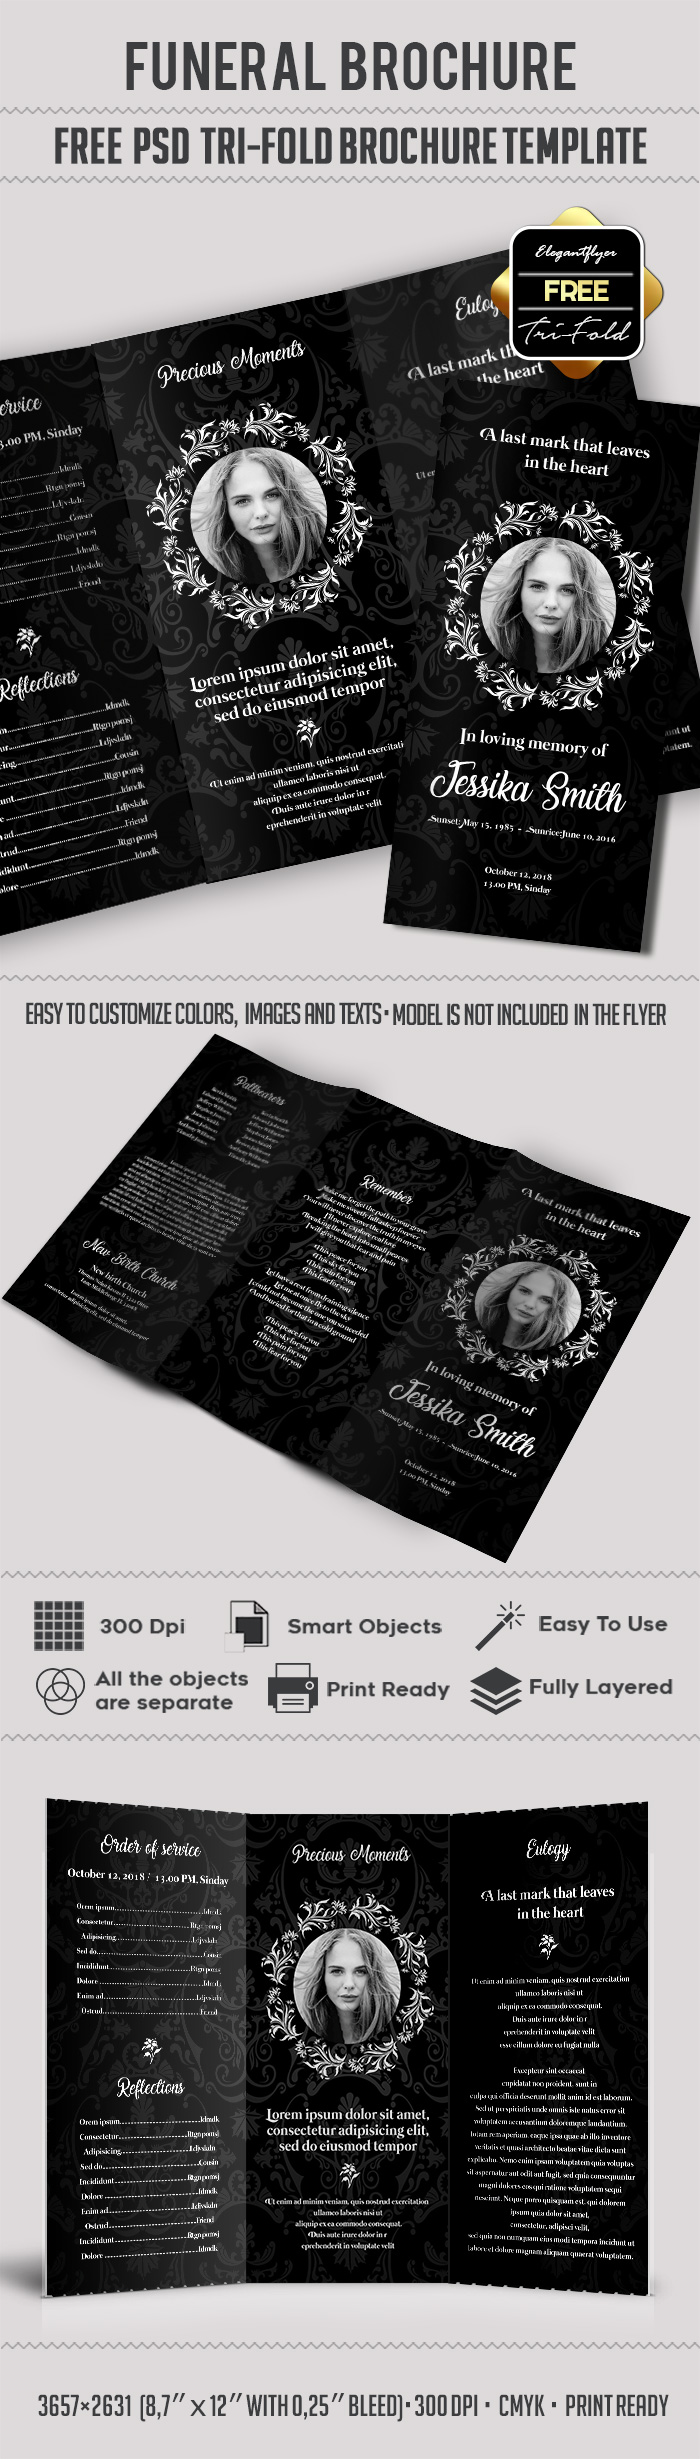 Free funeral trifold brochure by elegantflyer for Funeral brochure templates free